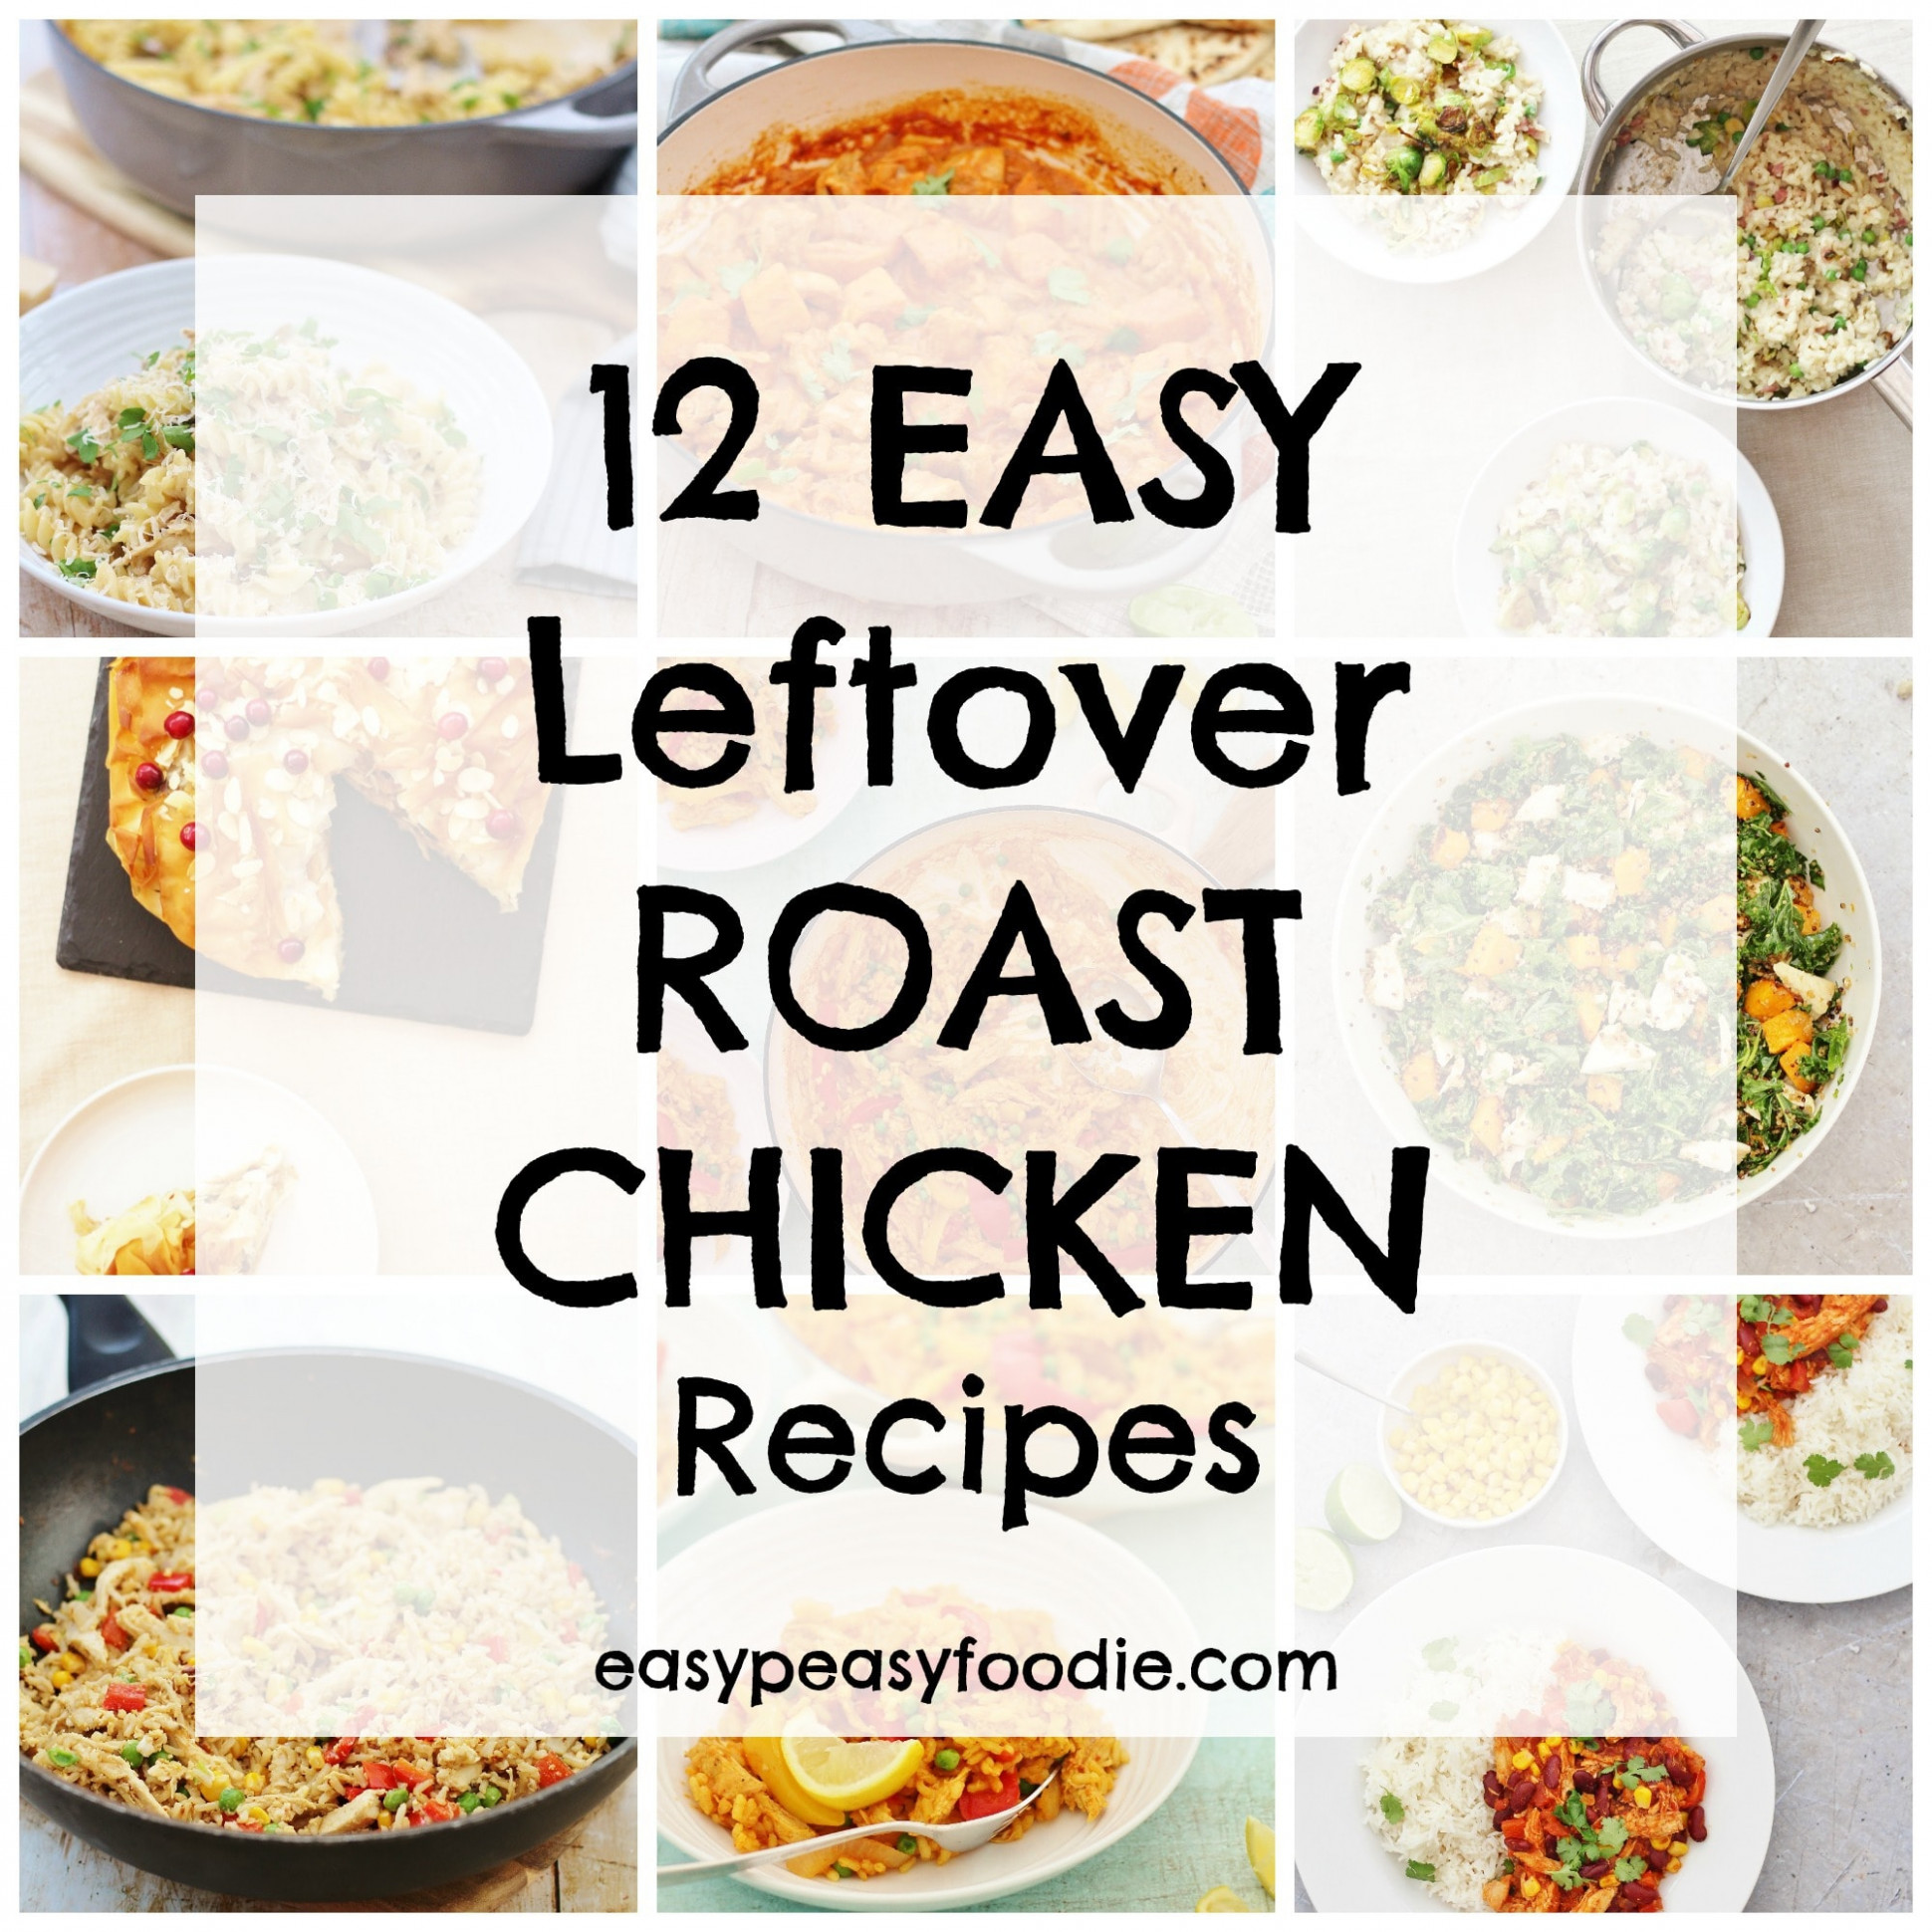 12 Easy Leftover Roast Chicken Recipes - Easy Peasy Foodie - leftover roast chicken recipes